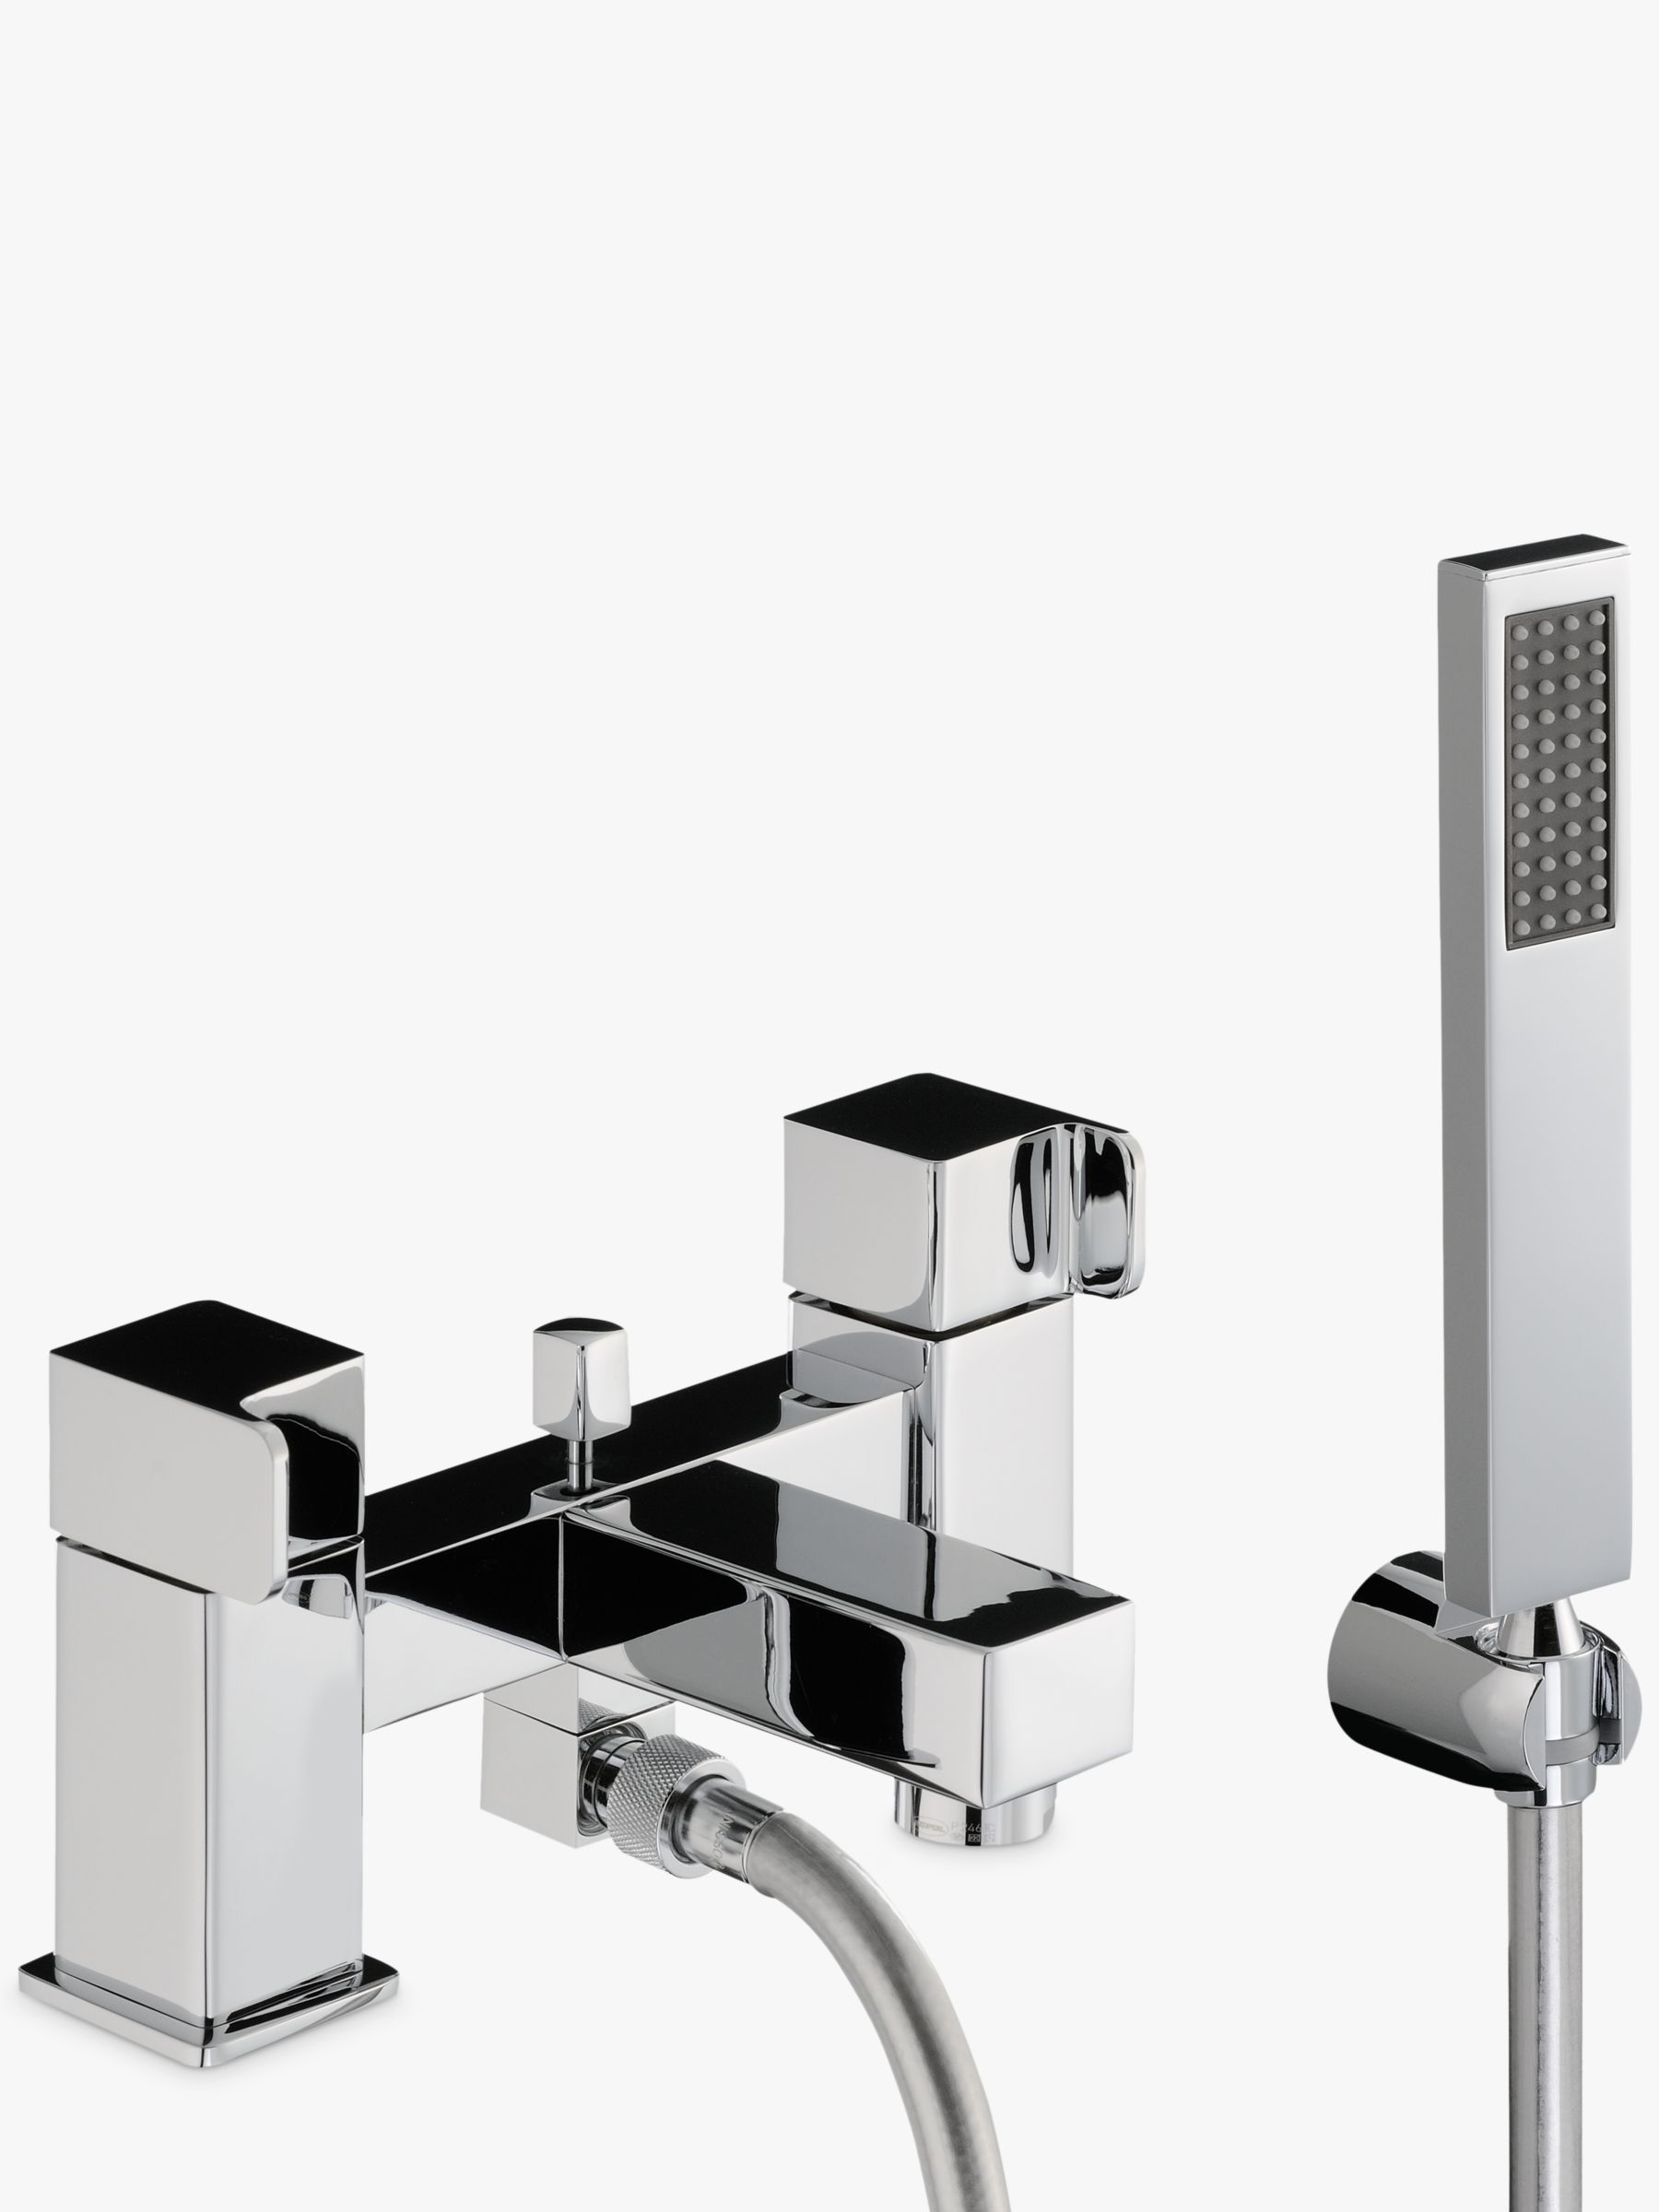 Abode Abode Rapport Deck Mounted Bath/Shower Mixer with Shower Handset